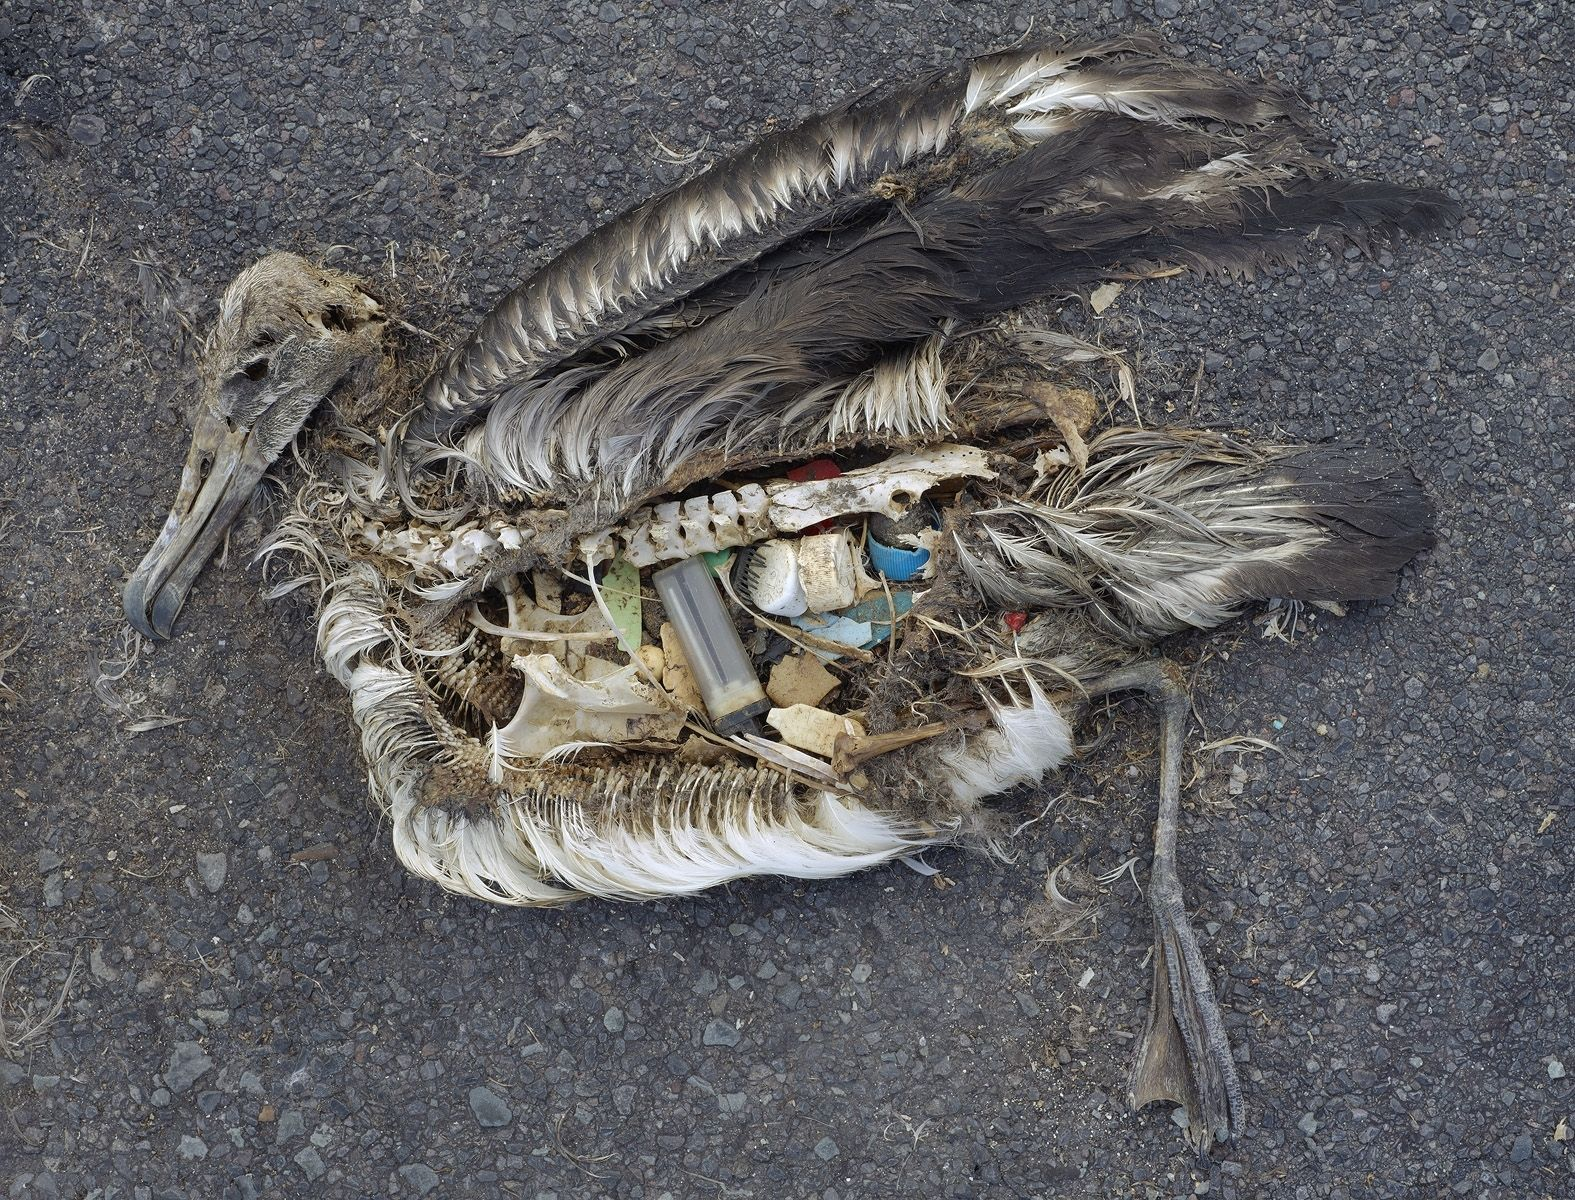 Microbeads_-_Albatross_Plastic_in_Stomach.jpg